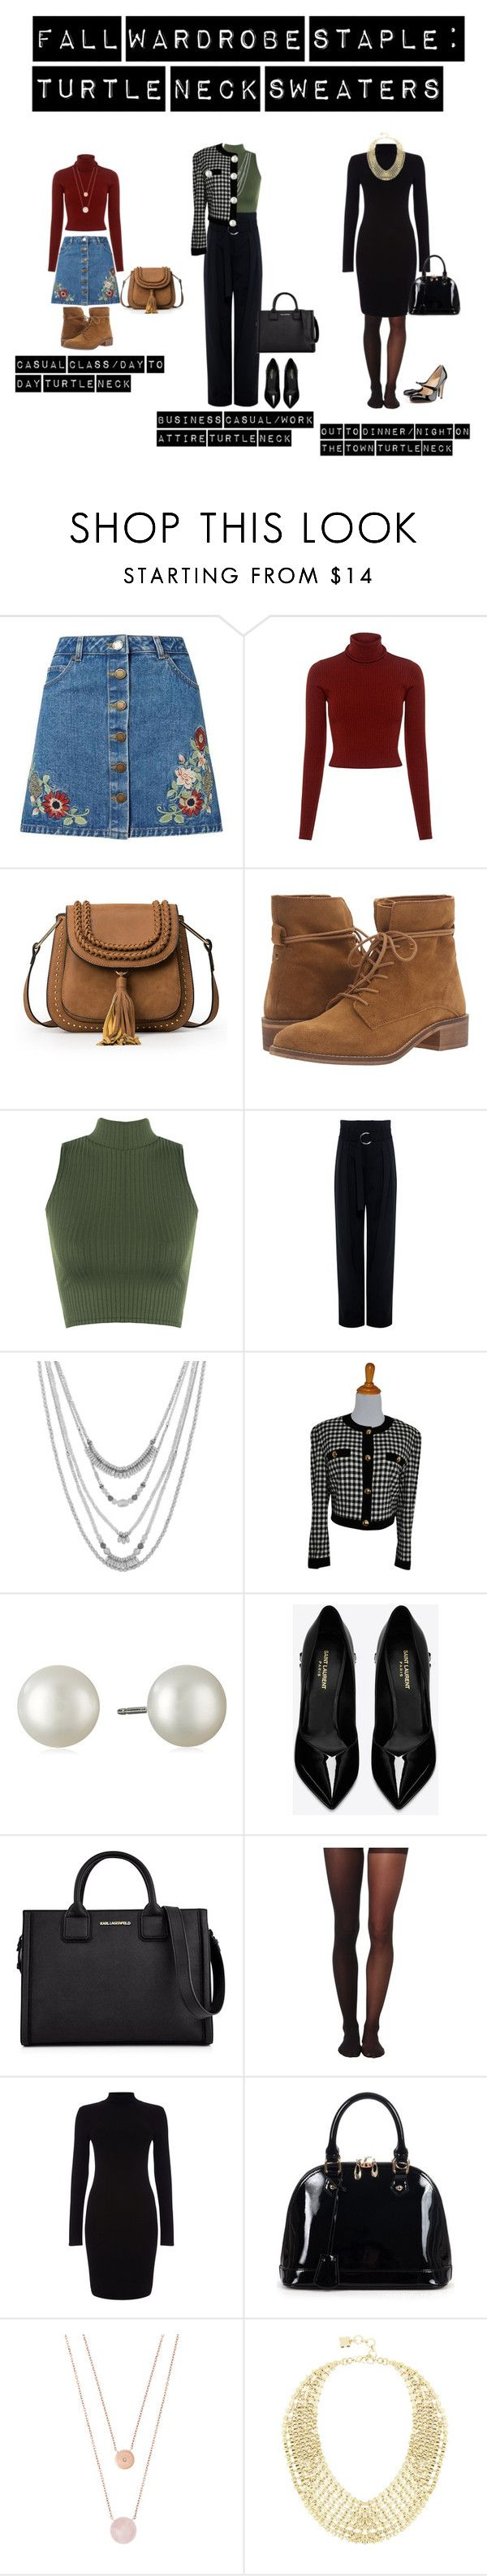 """""""FALL WARDROBE STAPLE: TURTLE NECK SWEATERS"""" by goldandkuhl ❤ liked on Polyvore featuring Miss Selfridge, A.L.C., Steve Madden, WearAll, IRO, Lucky Brand, ESCADA, Yves Saint Laurent, Karl Lagerfeld and Wolford"""